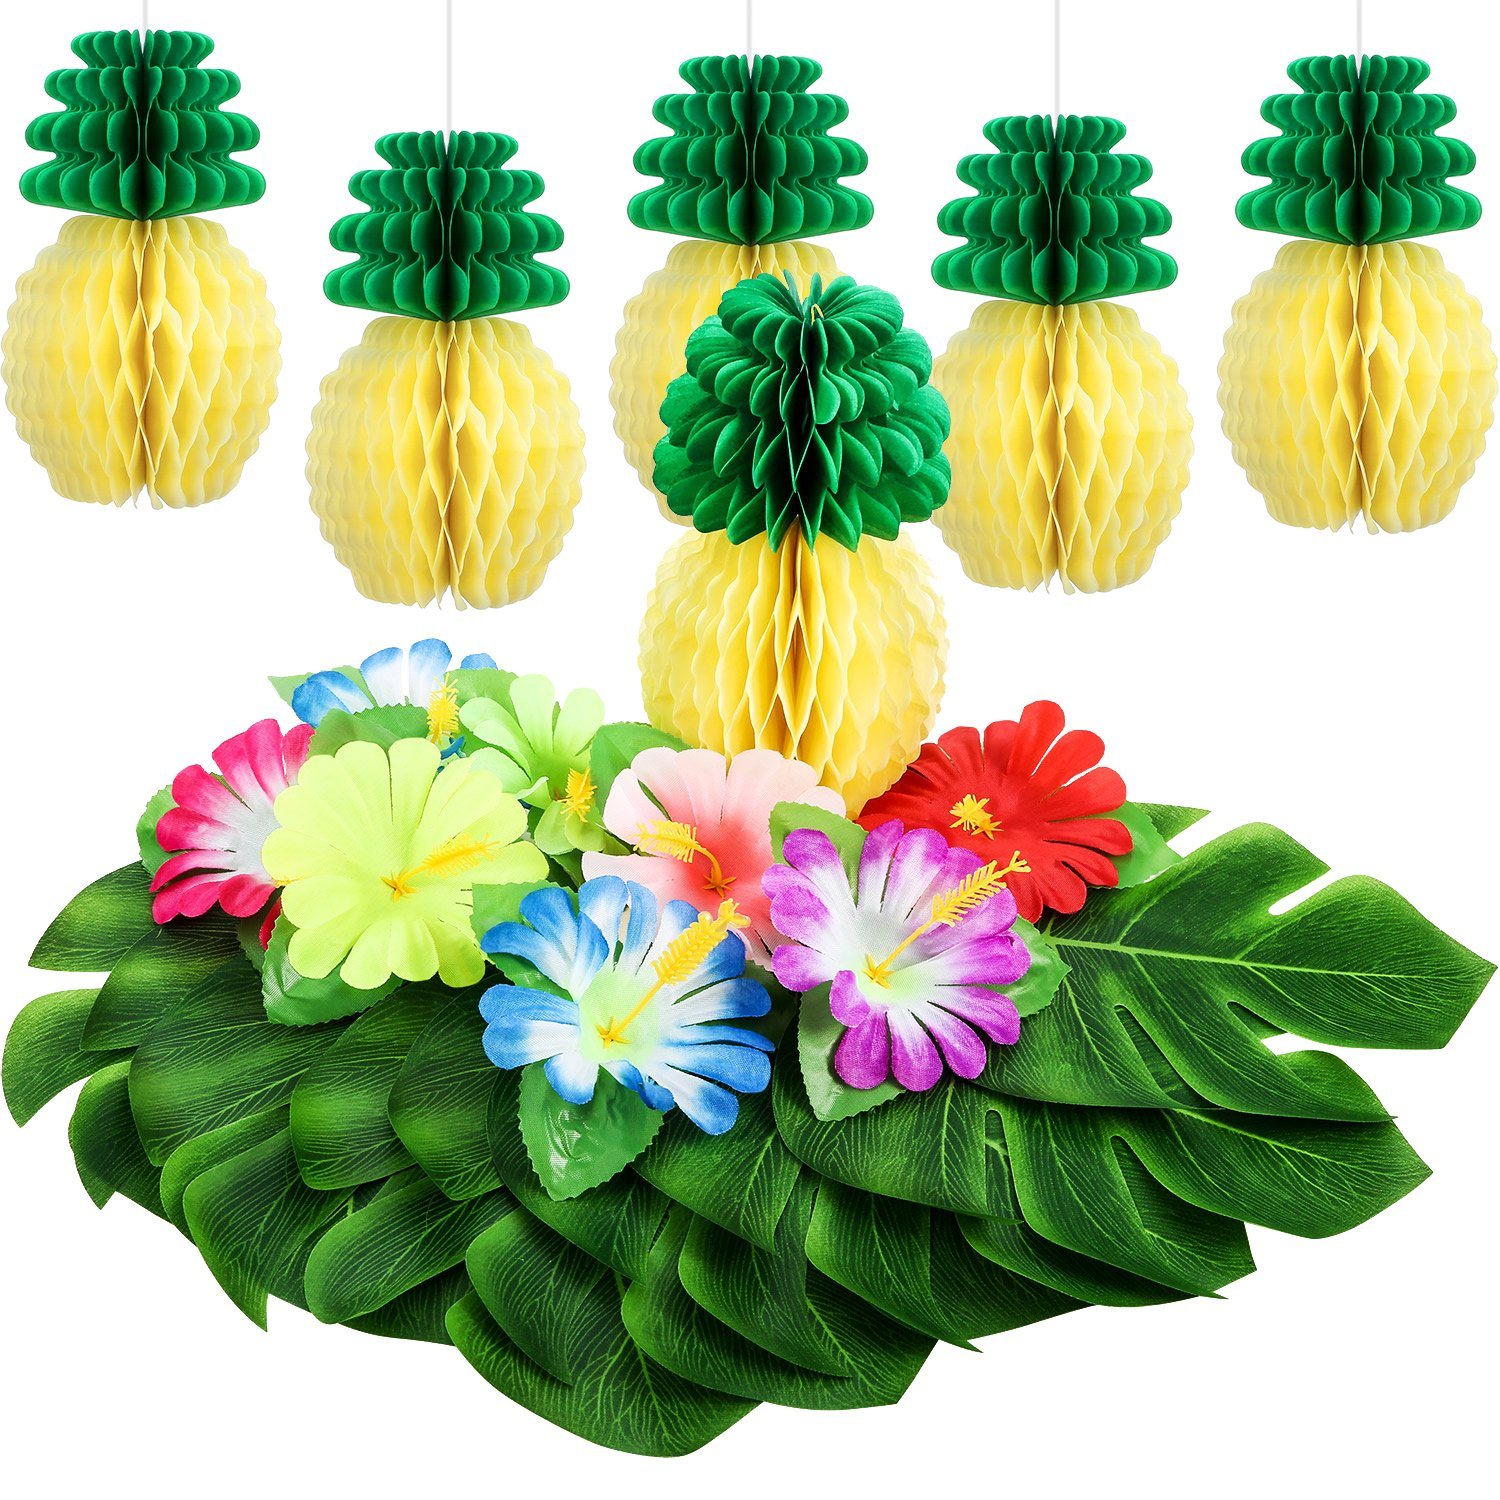 TOODOO 42 Pieces Hawaiian Tropical Party Decoration, 18 Pieces Tropical Faux Palm Leaves, 18 Pieces Artificial Hibiscus Flowers with 6 Pieces Tissue Pineapples by TOODOO